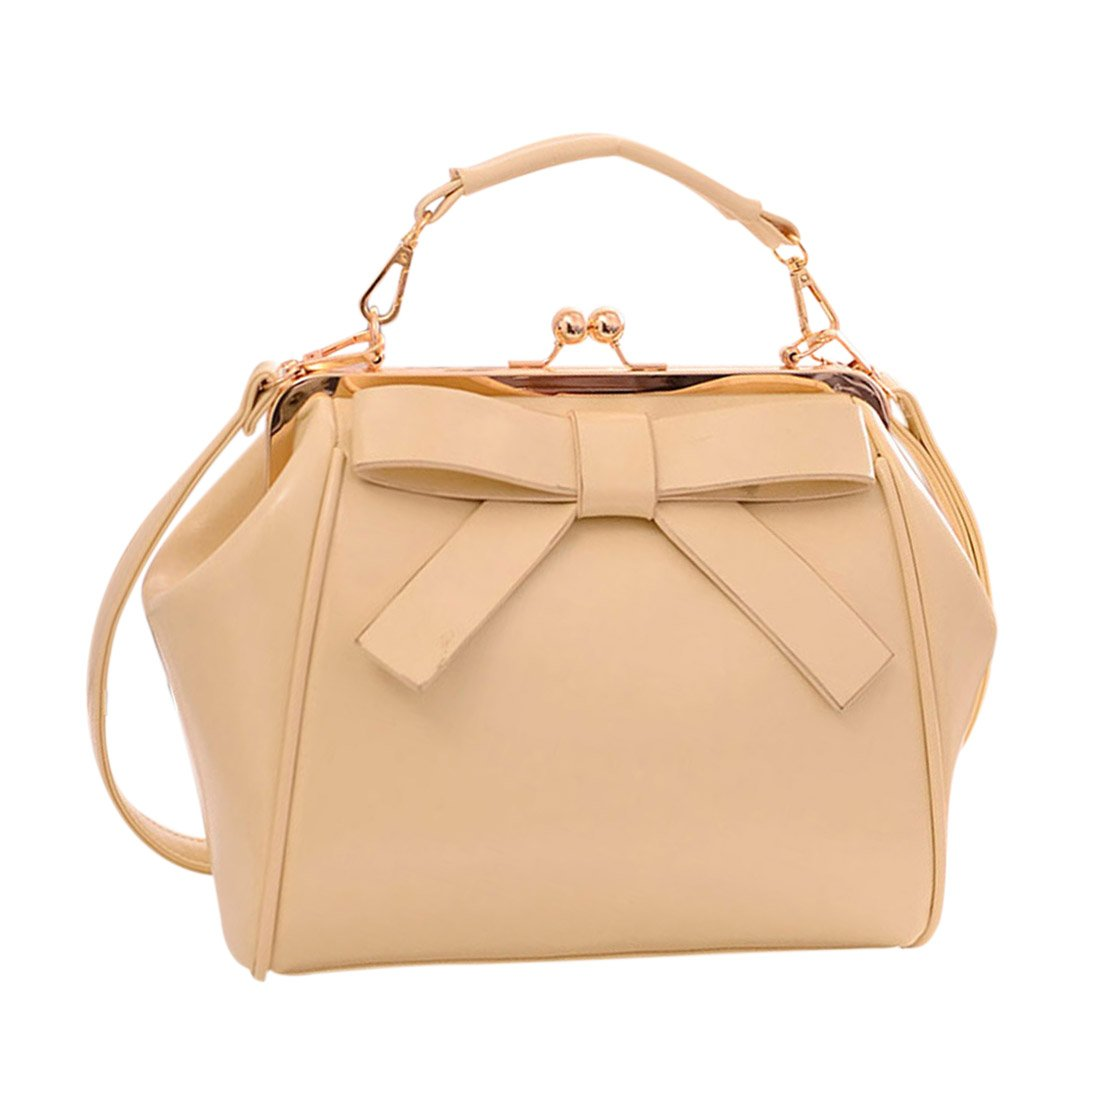 Qianle Women PU Leather Cute Bow Patten Handbag Purse Girls Cross-Body Bag DASEIN Women Handbags Top Handle Satchel Purse Shoulder Bag Briefcase Hobo Bag Set 2pcs Coach Lexy Shoulder Bag in Outline Signature 2018 Collection Style F57612 Women Pu Leather Weave Handbag Purse Bag Set 3 Pieces Tote Bag Set Shoulder Bags Big Capacity SILI Kattee Women's Soft Genuine Leather Tote Bag, Top Satchel Purses and Handbags Scarleton Decorative Front Belt Crossbody Bag H1725